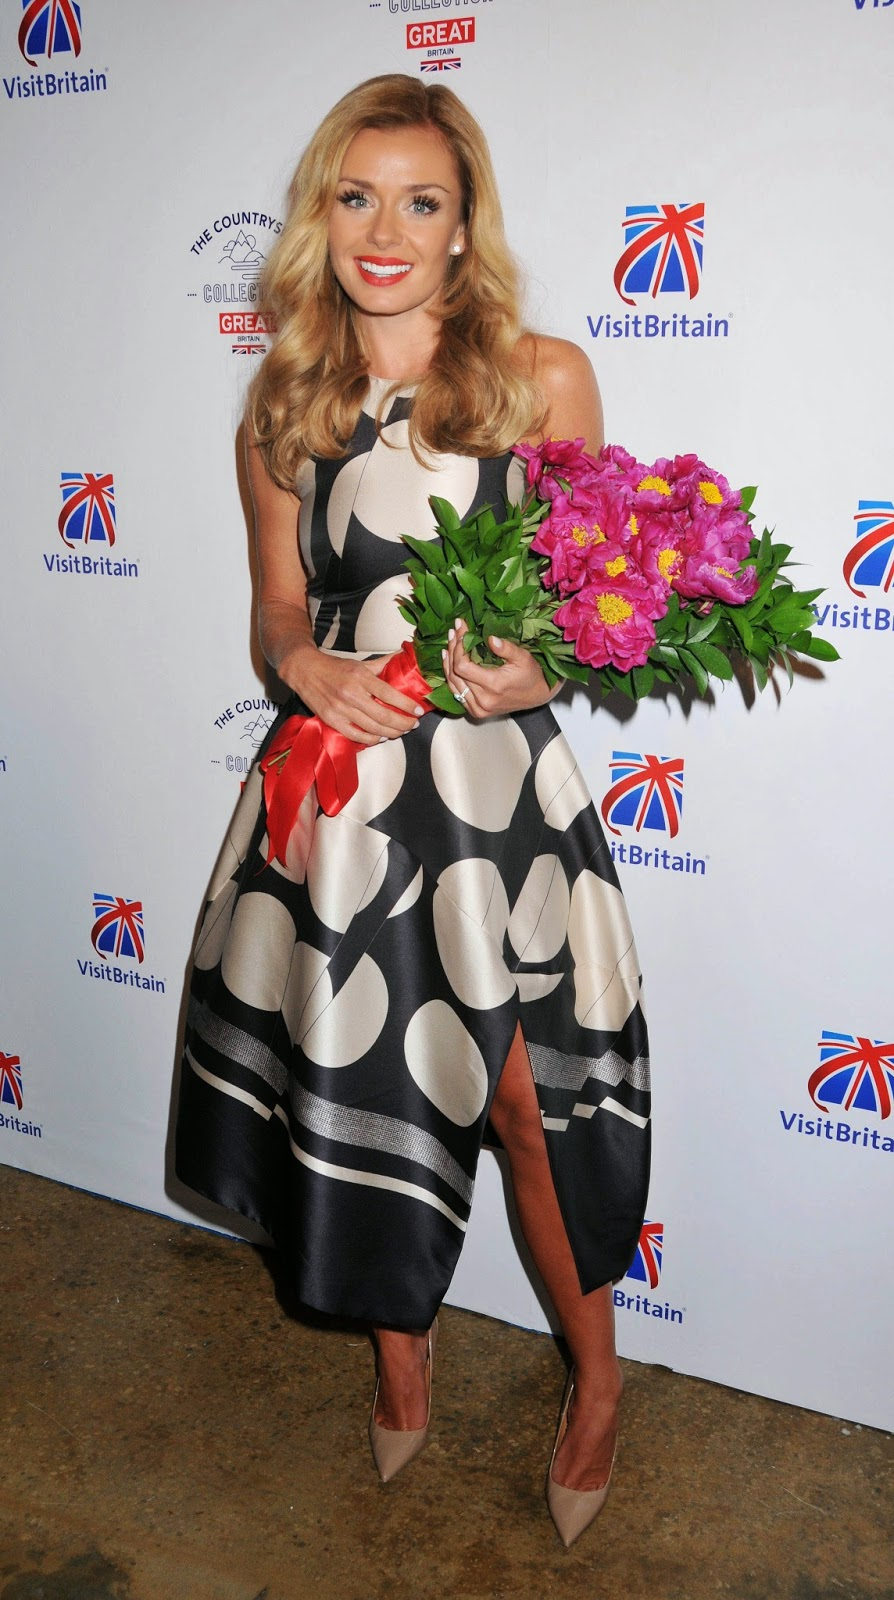 Classical-Crossover, Classical, Operatic Pop: Katherine Jenkins At Visitbritain Celebrates The Countryside Collection Launch In New York